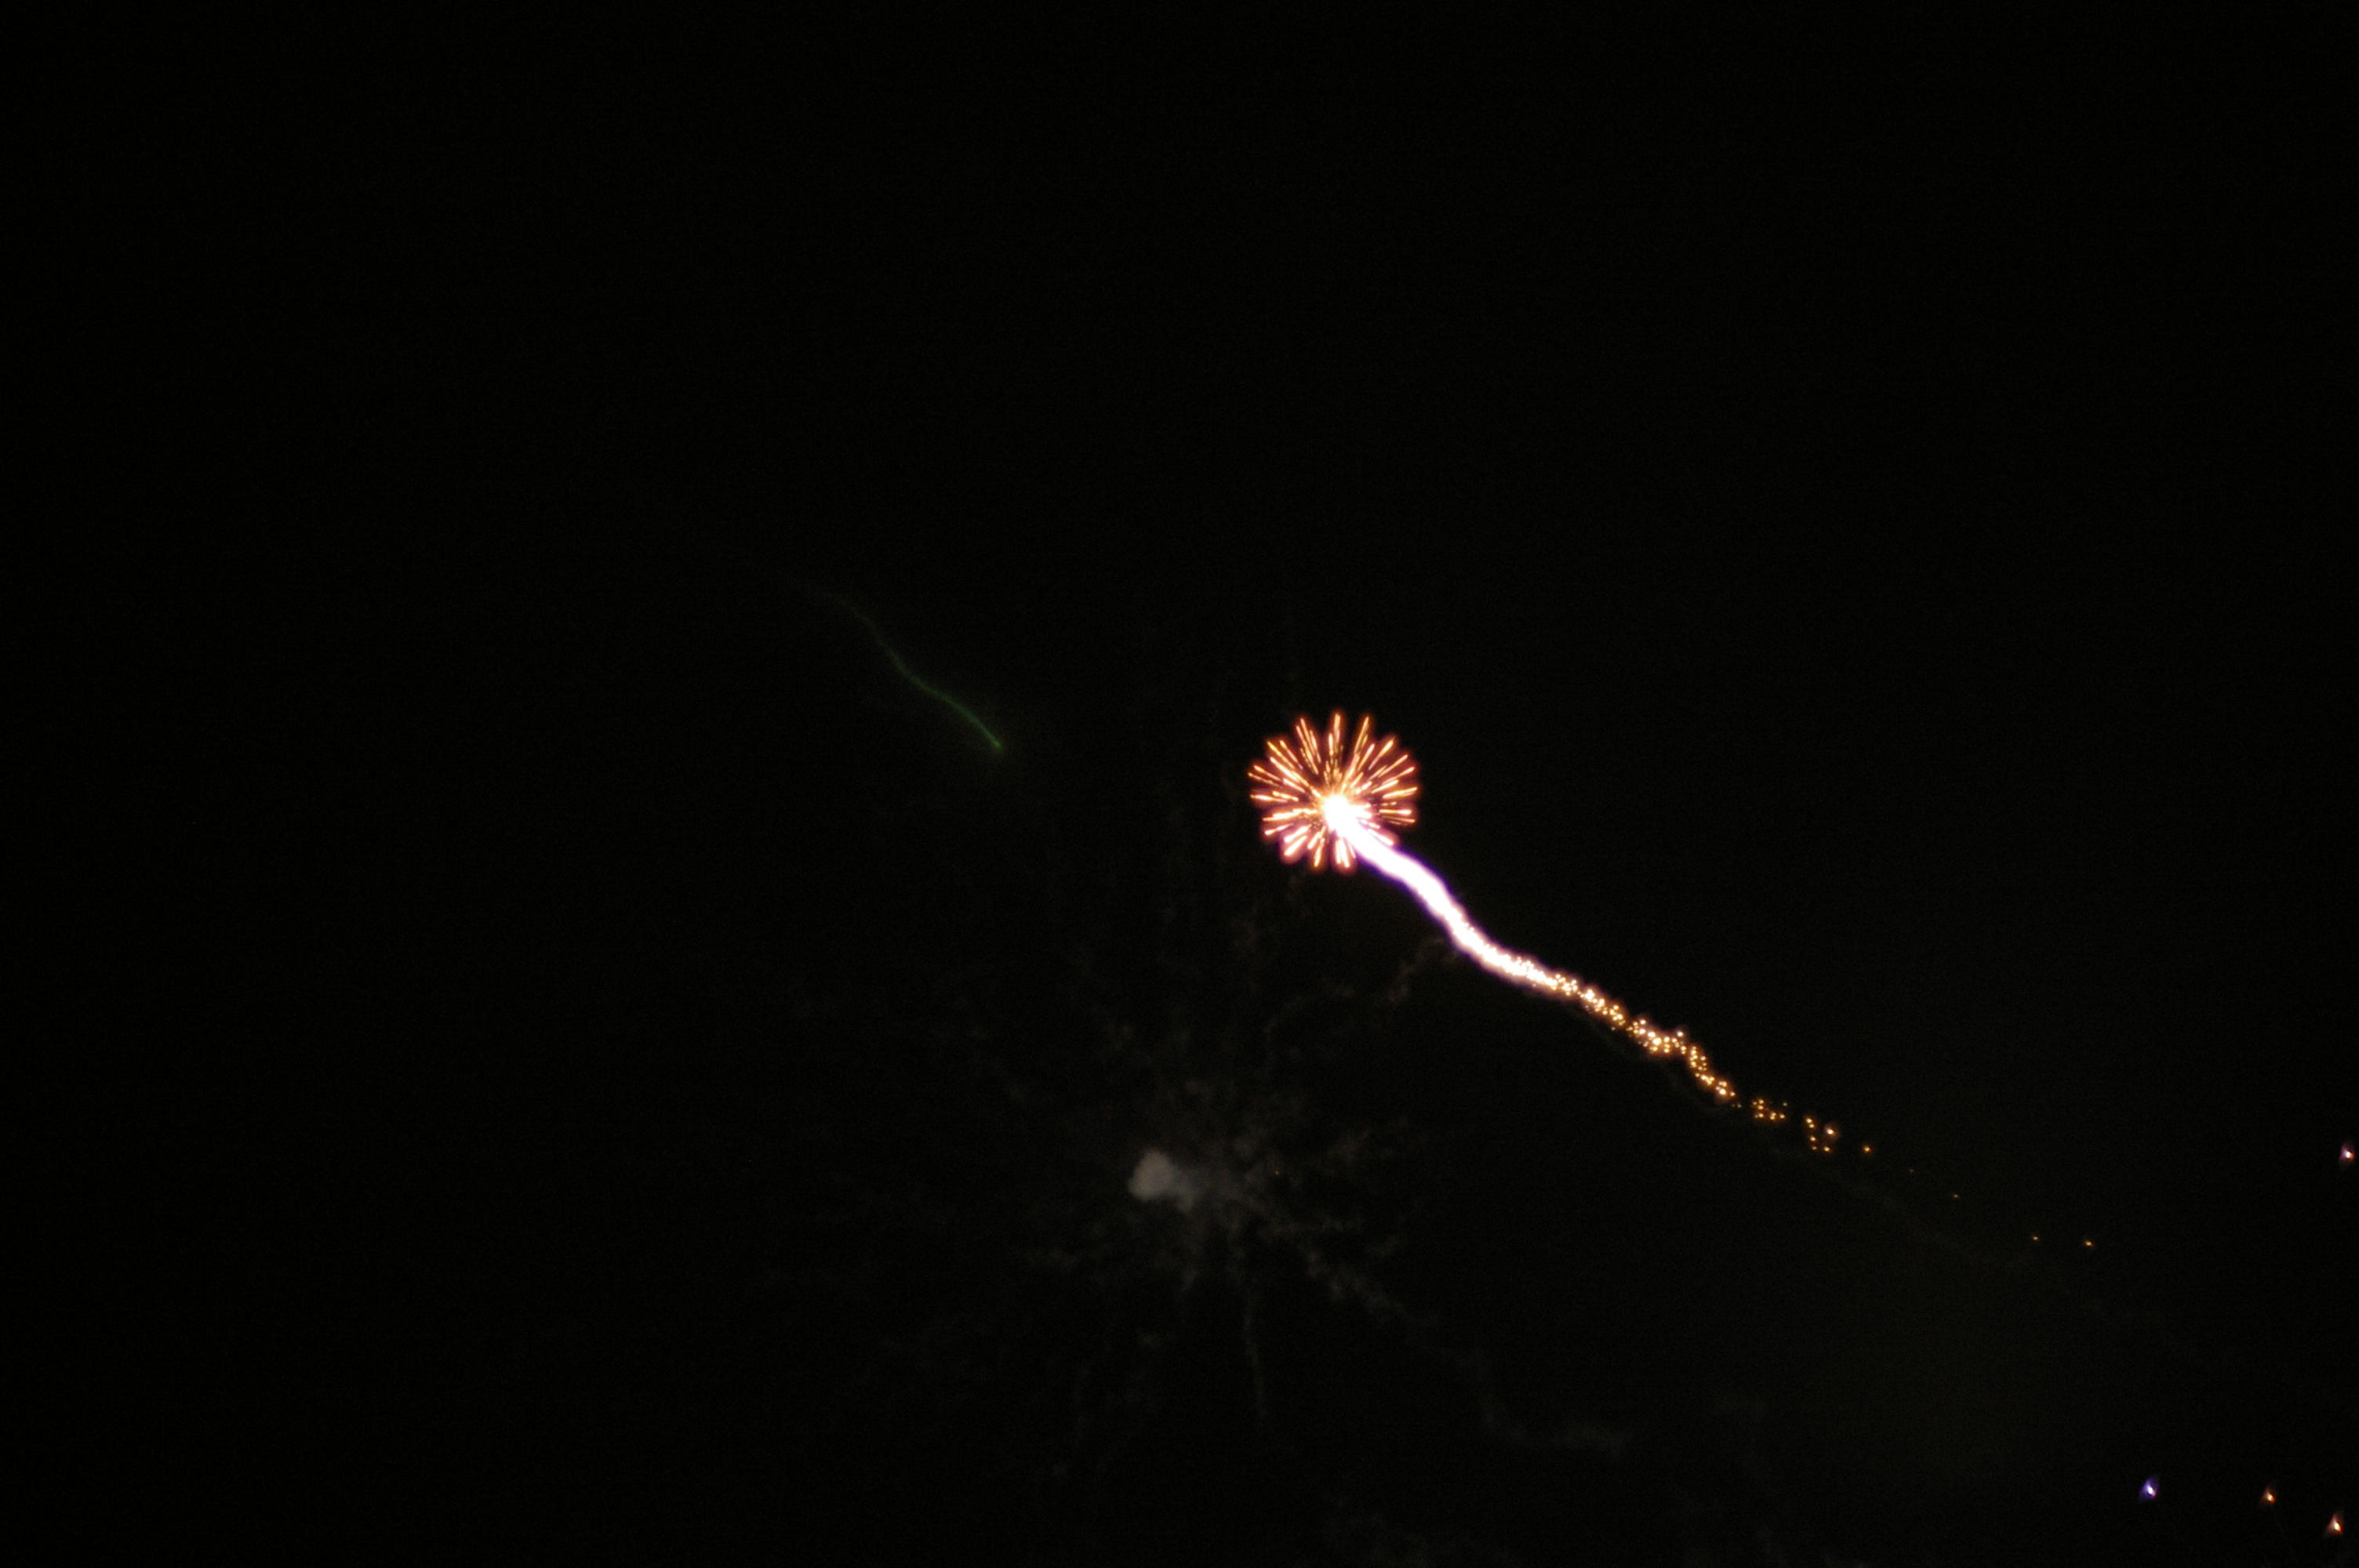 a single firework shooting into the sky